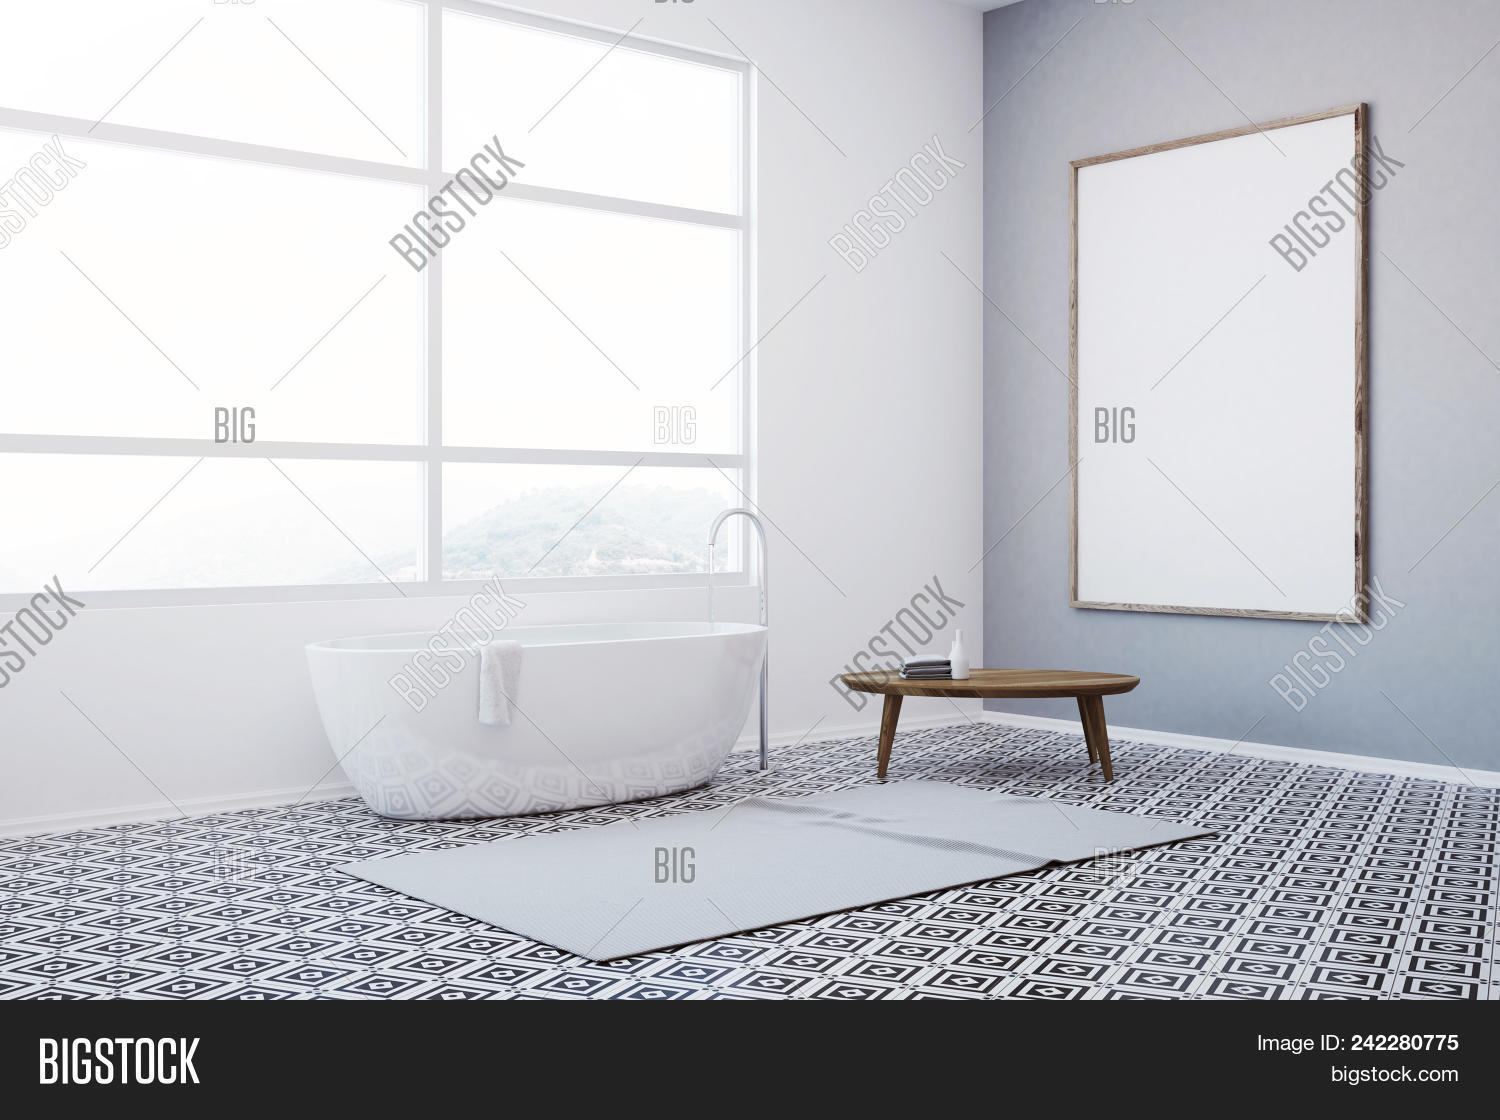 Asian Style Bathroom Image & Photo (Free Trial) | Bigstock